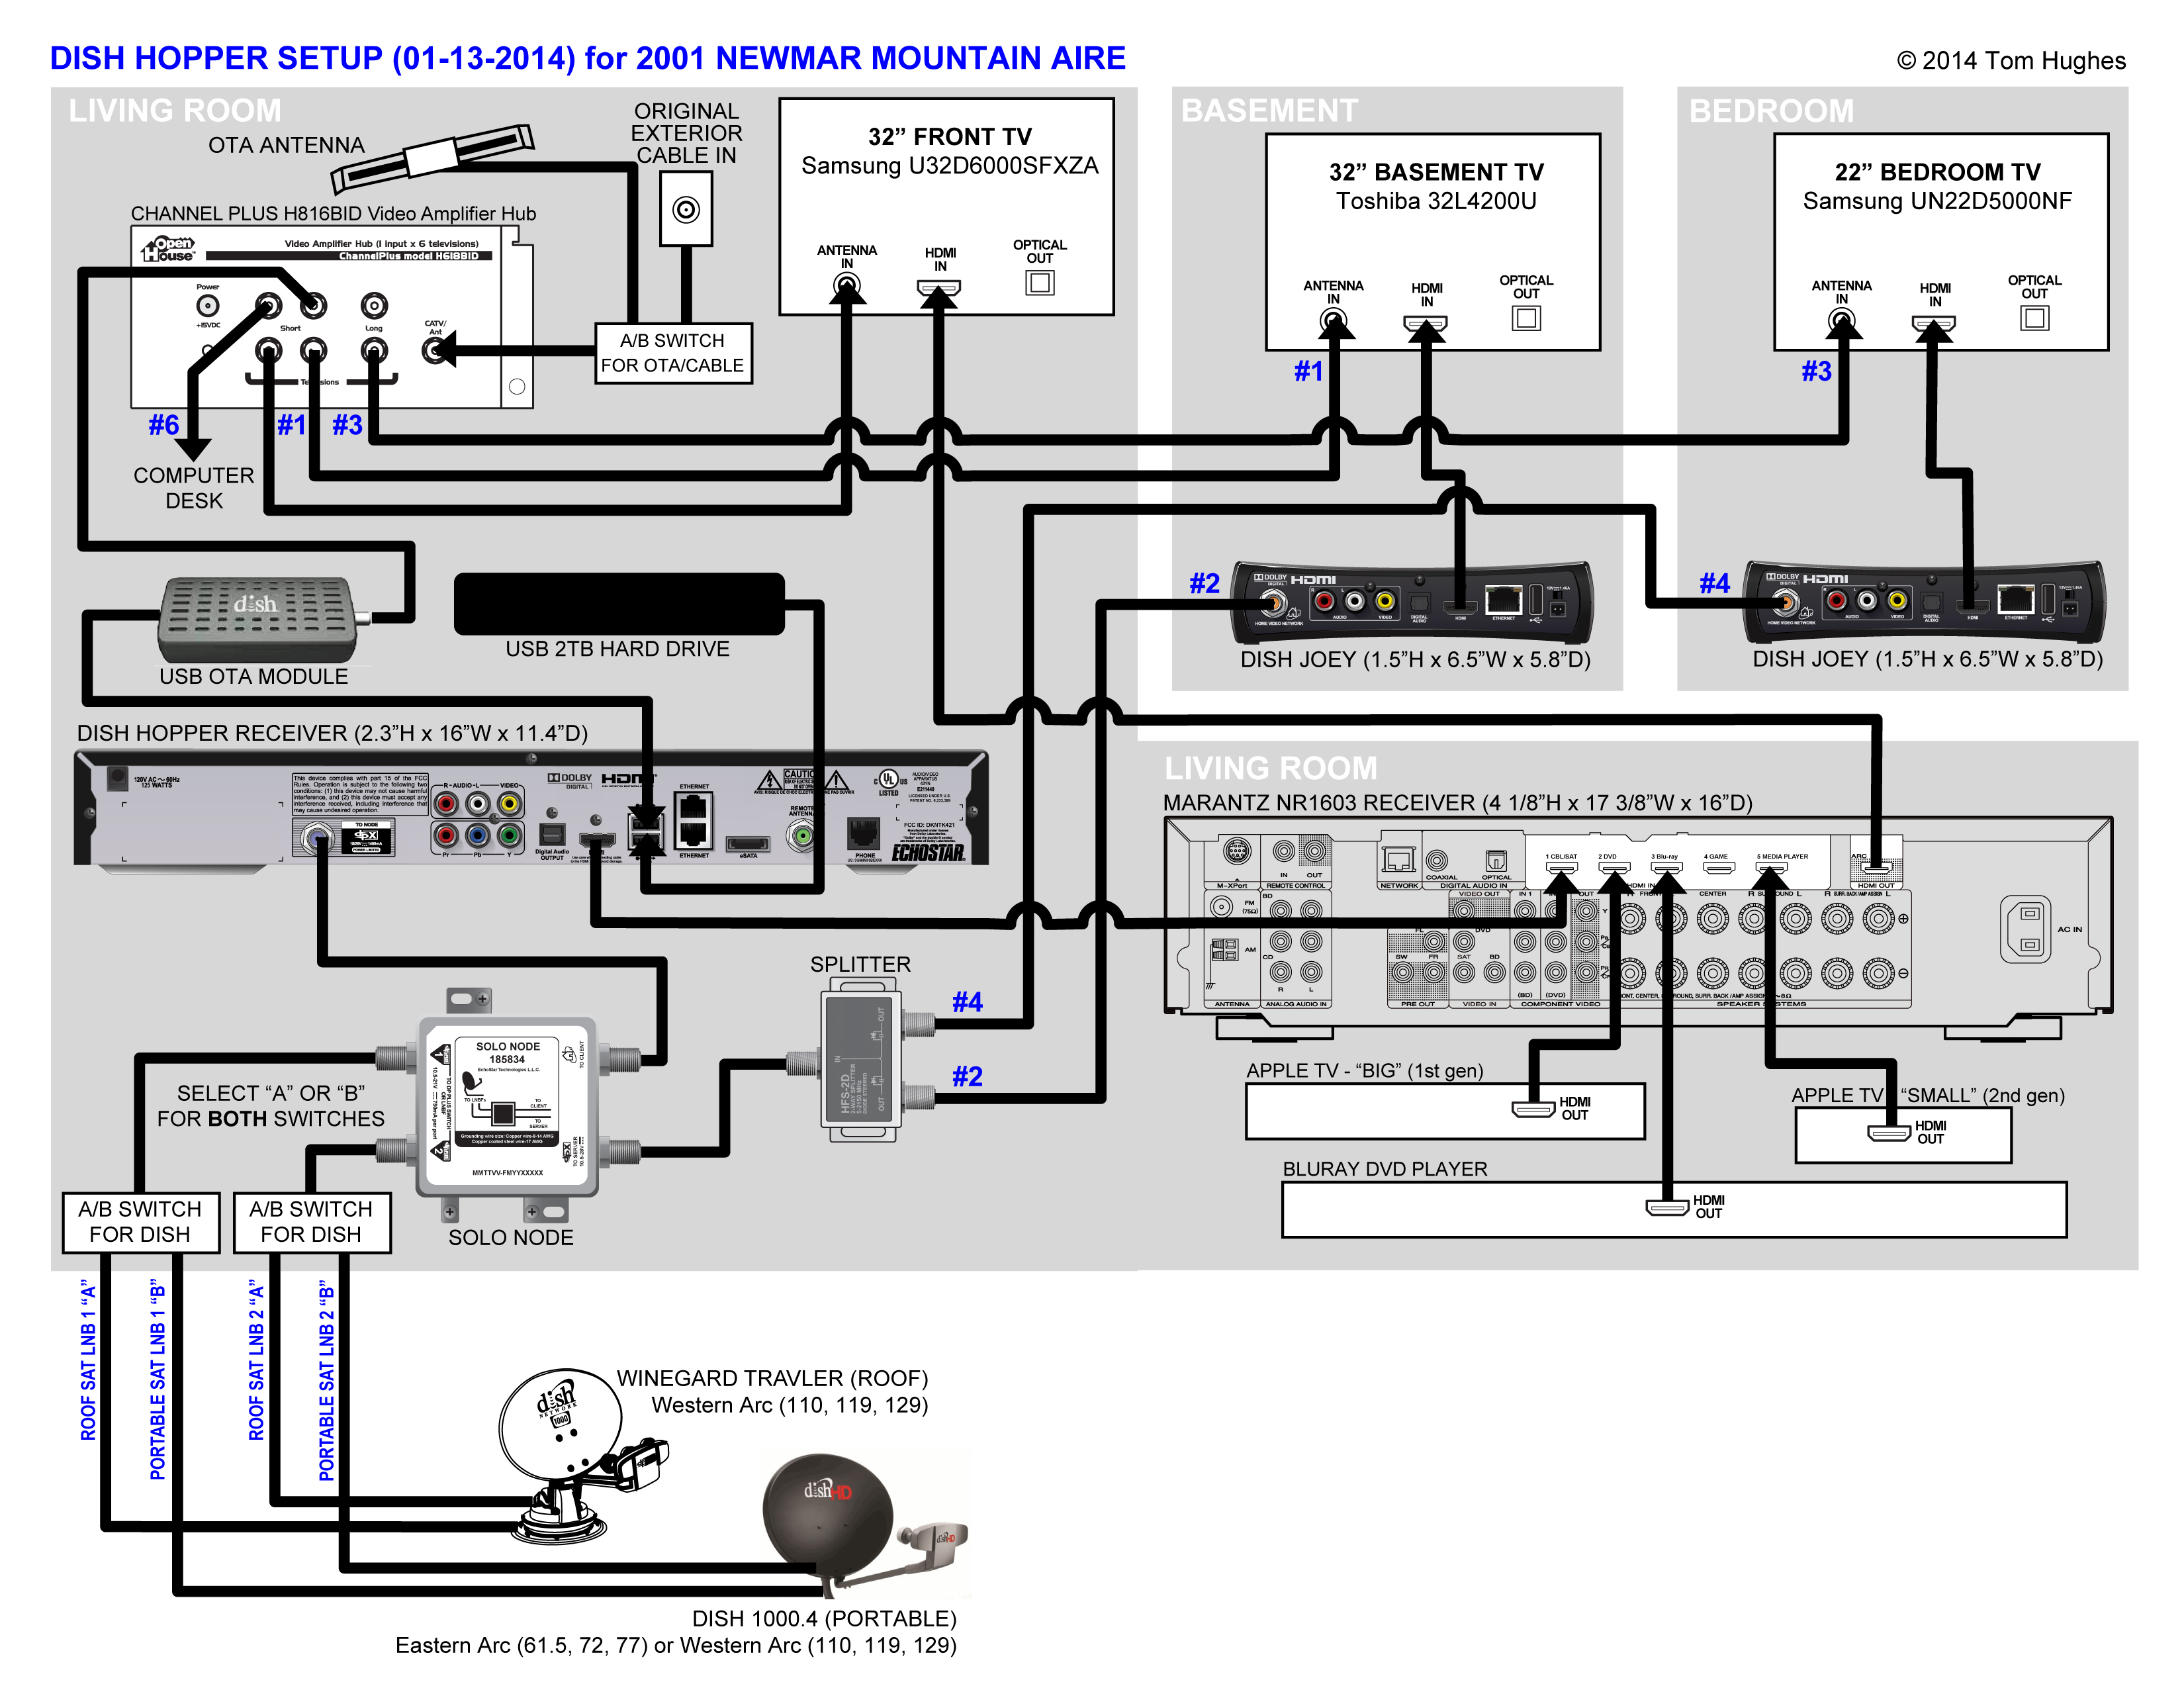 dish vip 222 wiring diagram wiring diagram dvr wiring-diagram dual receiver wiring diagram #8